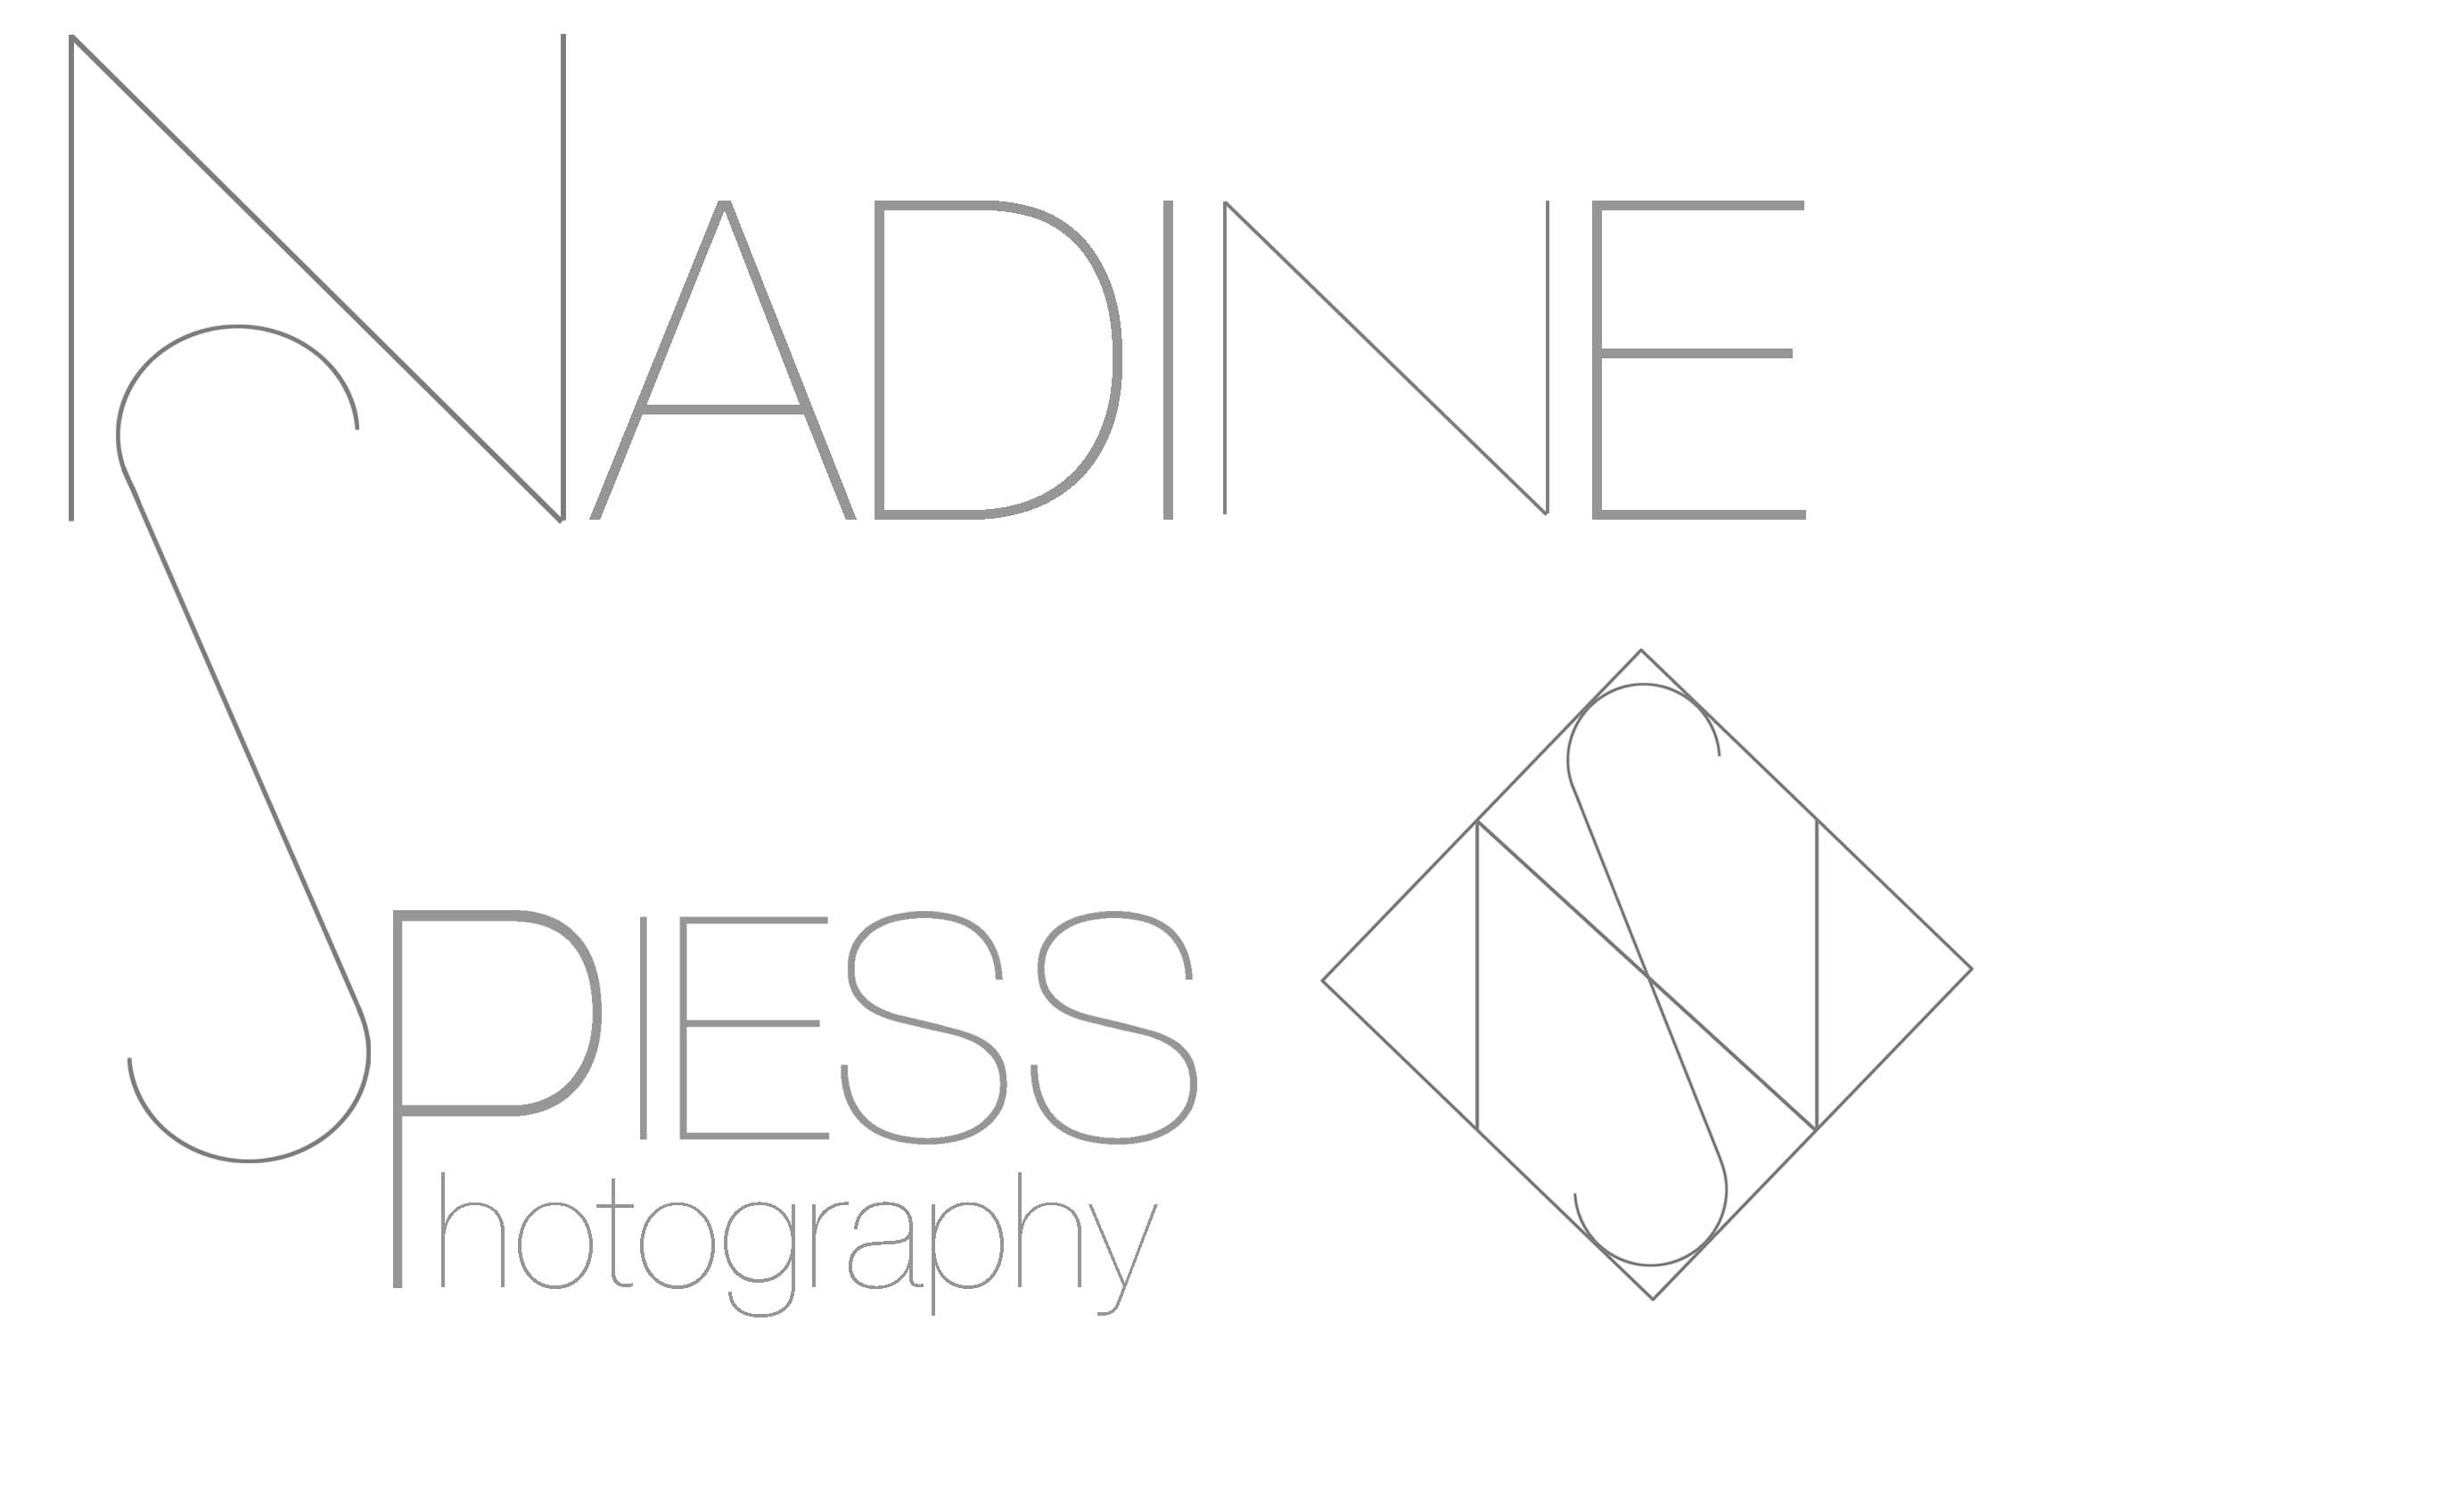 Nadine Spiess Photography